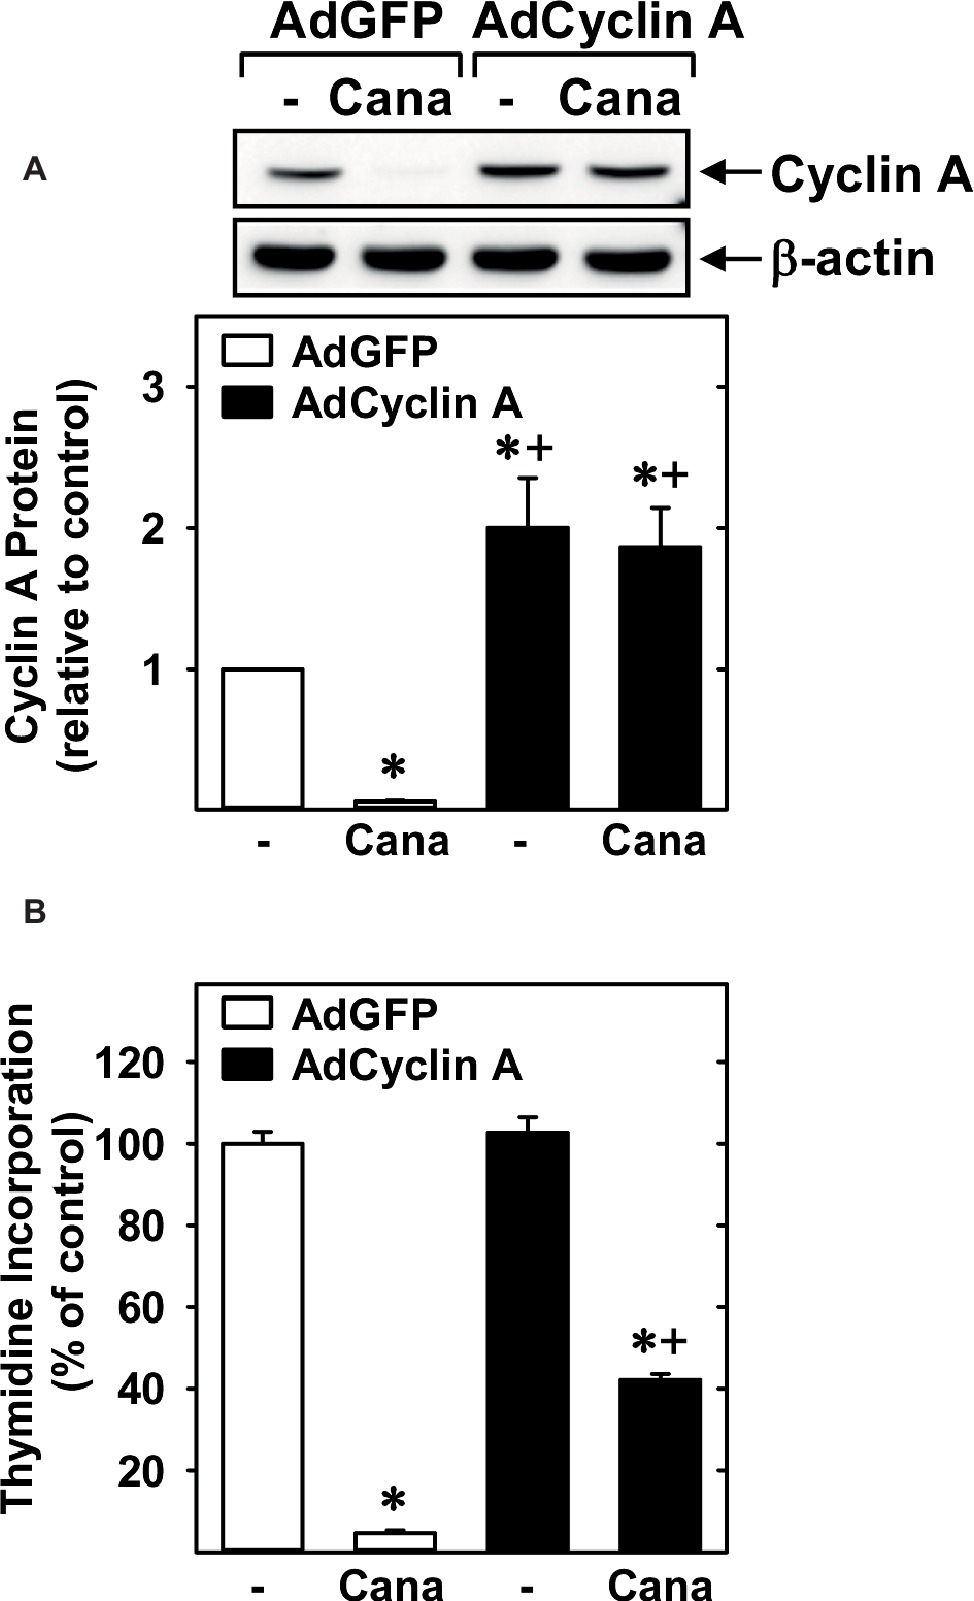 Frontiers | Canagliflozin Inhibits Human Endothelial Cell